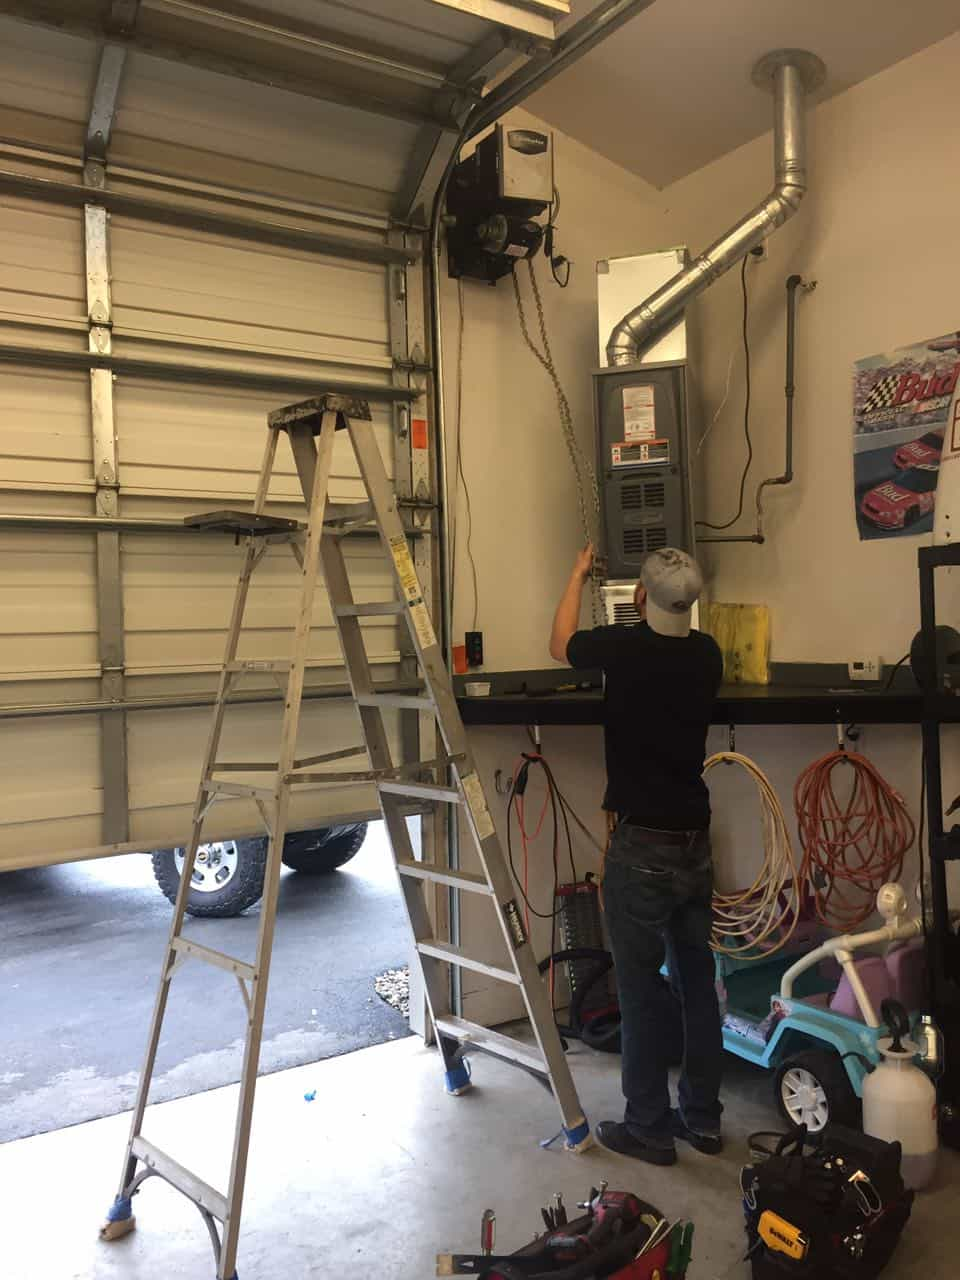 Commercial Garage Door Repair In Olympia WA By Elite Garage Door & Gate Repair